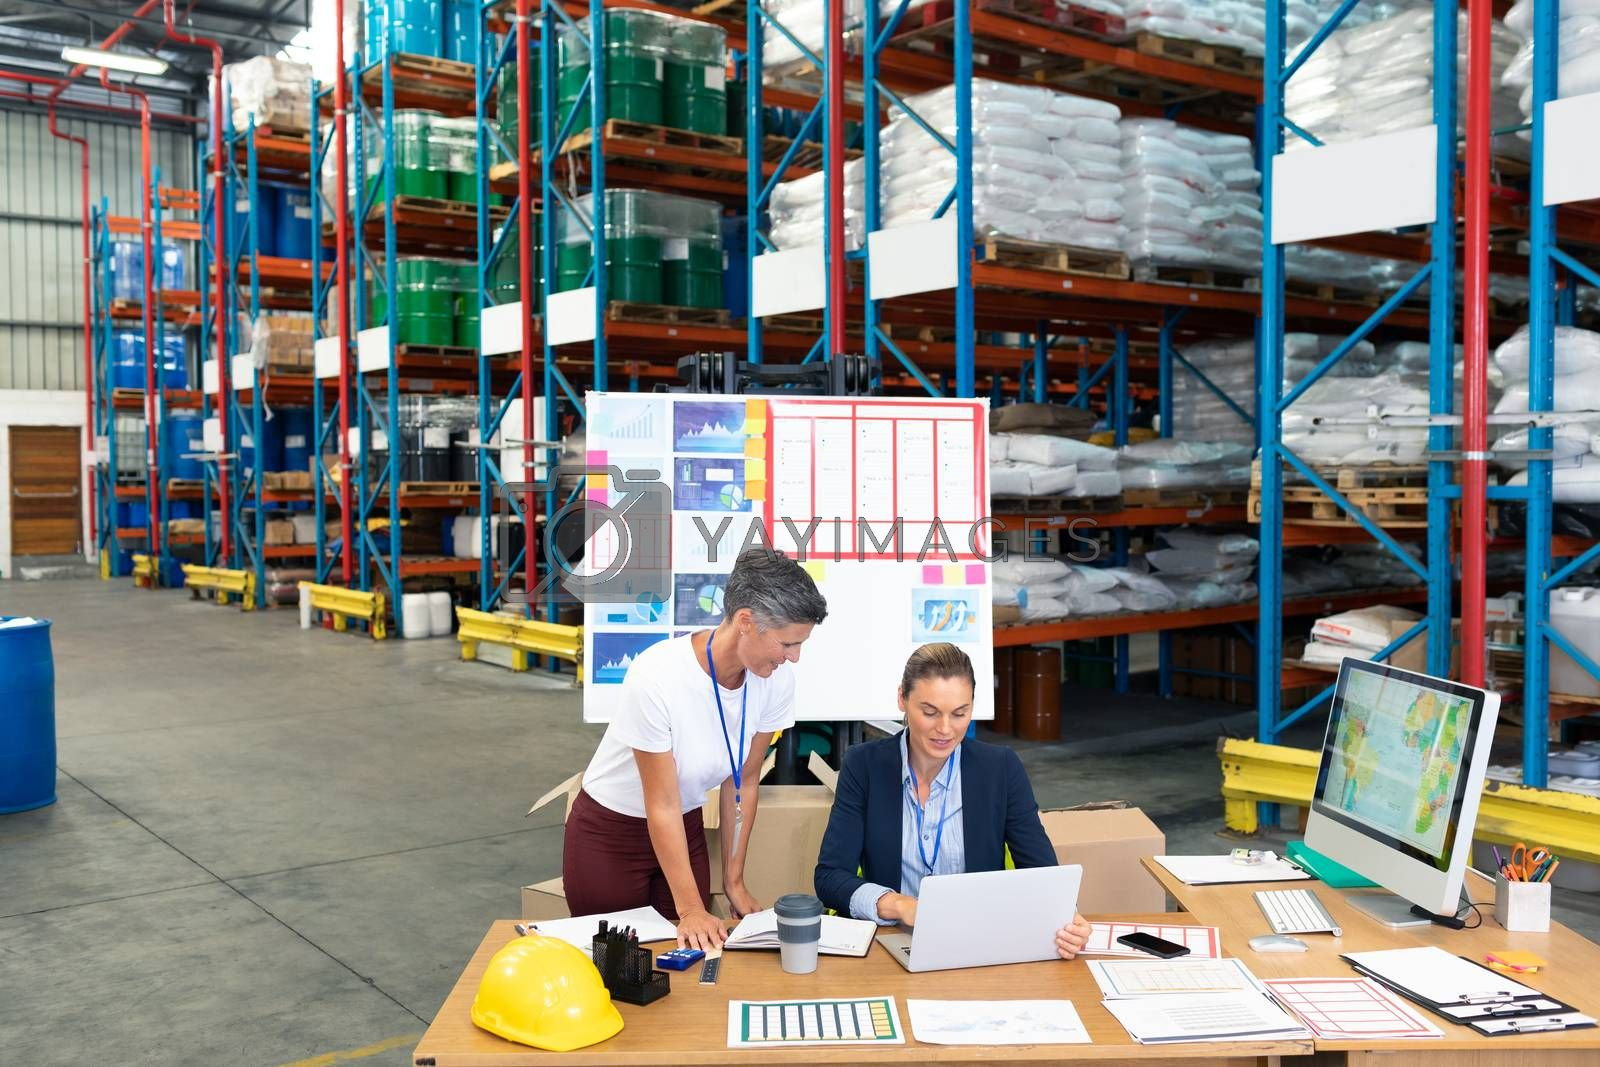 High angle view of beautiful Caucasian female manager with her coworker discussing over laptop at desk in warehouse. This is a freight transportation and distribution warehouse. Industrial and industrial workers concept